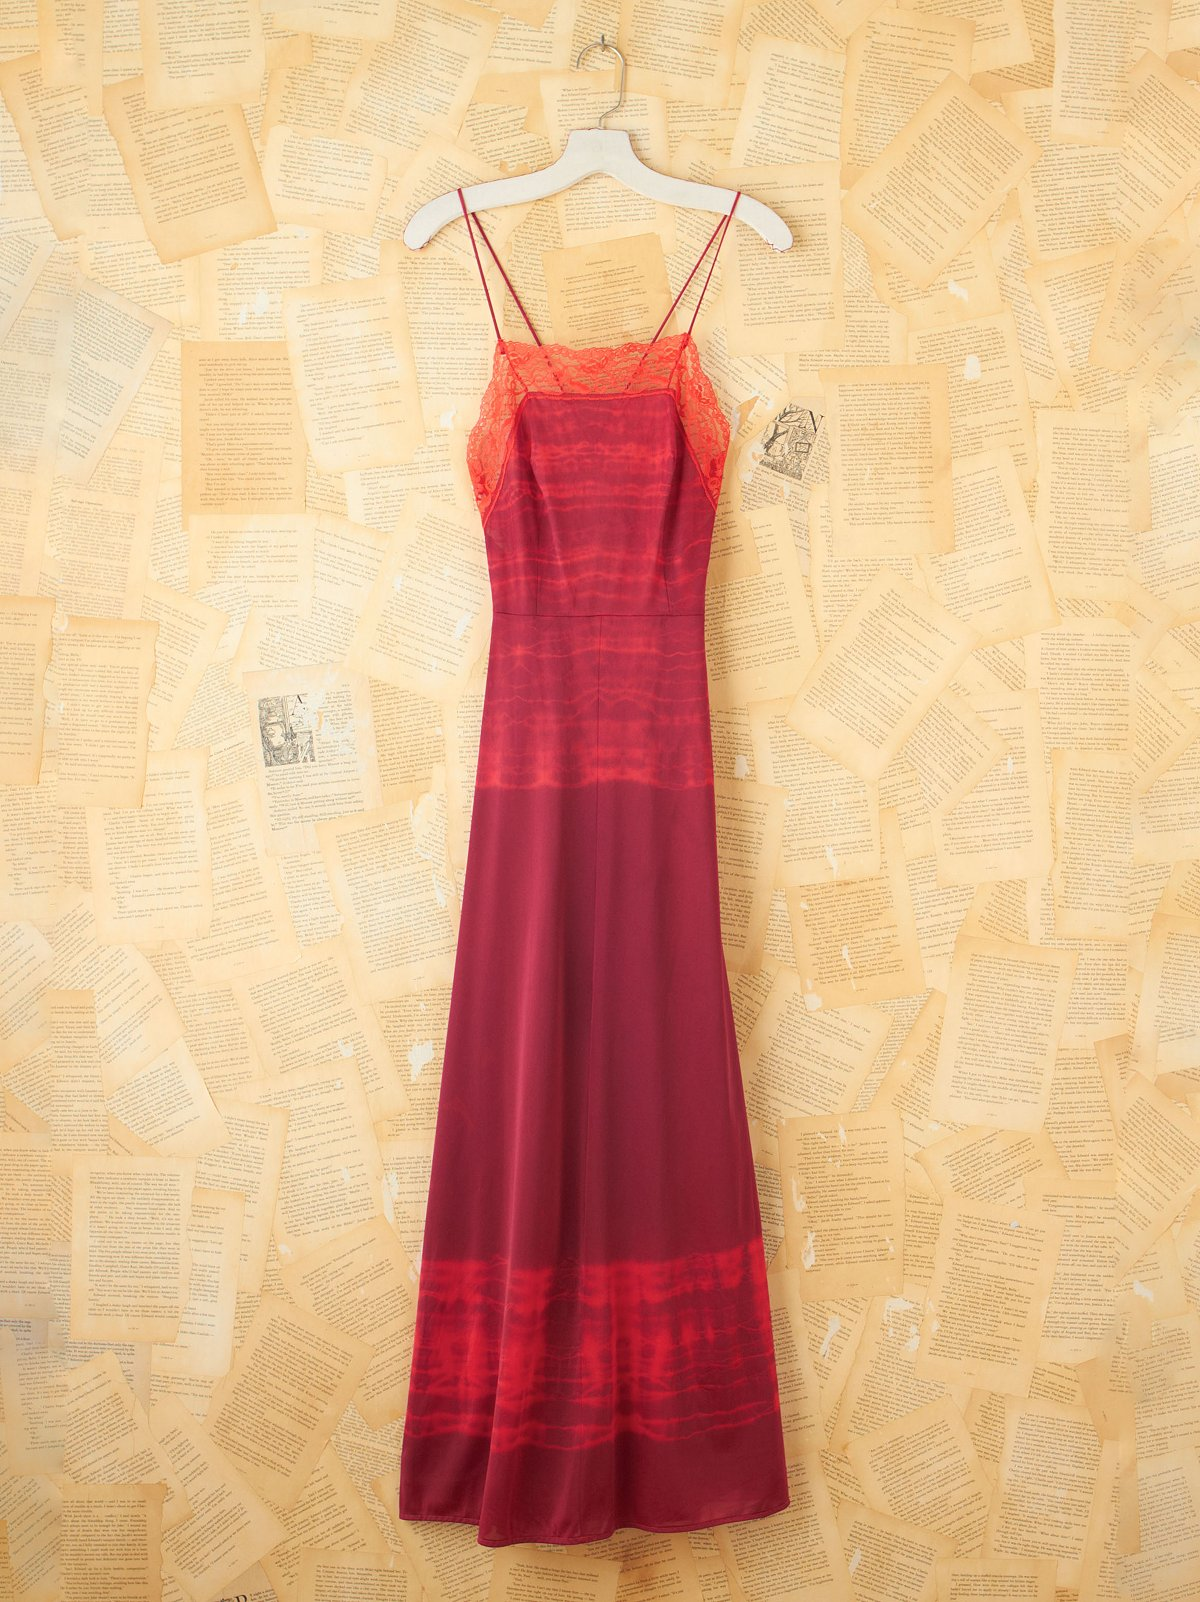 Vintage Red Tie Dye Maxi Slip Dress